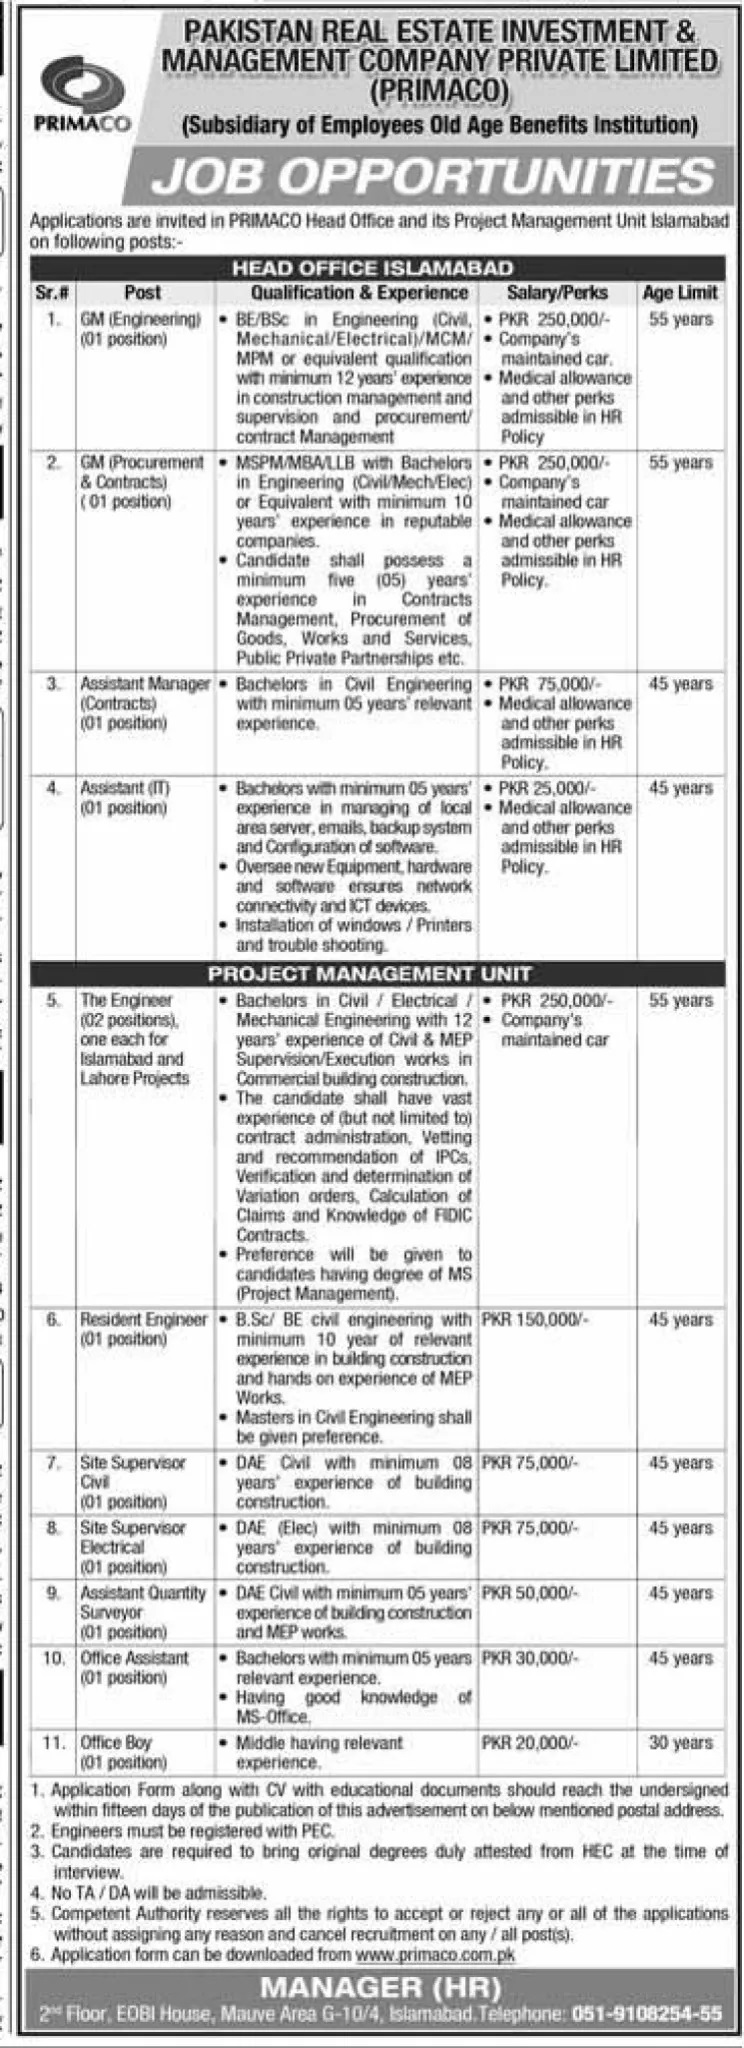 Private Jobs in Islamabad Today At Pricamo Pakistan Real Estate Investment & Management Company